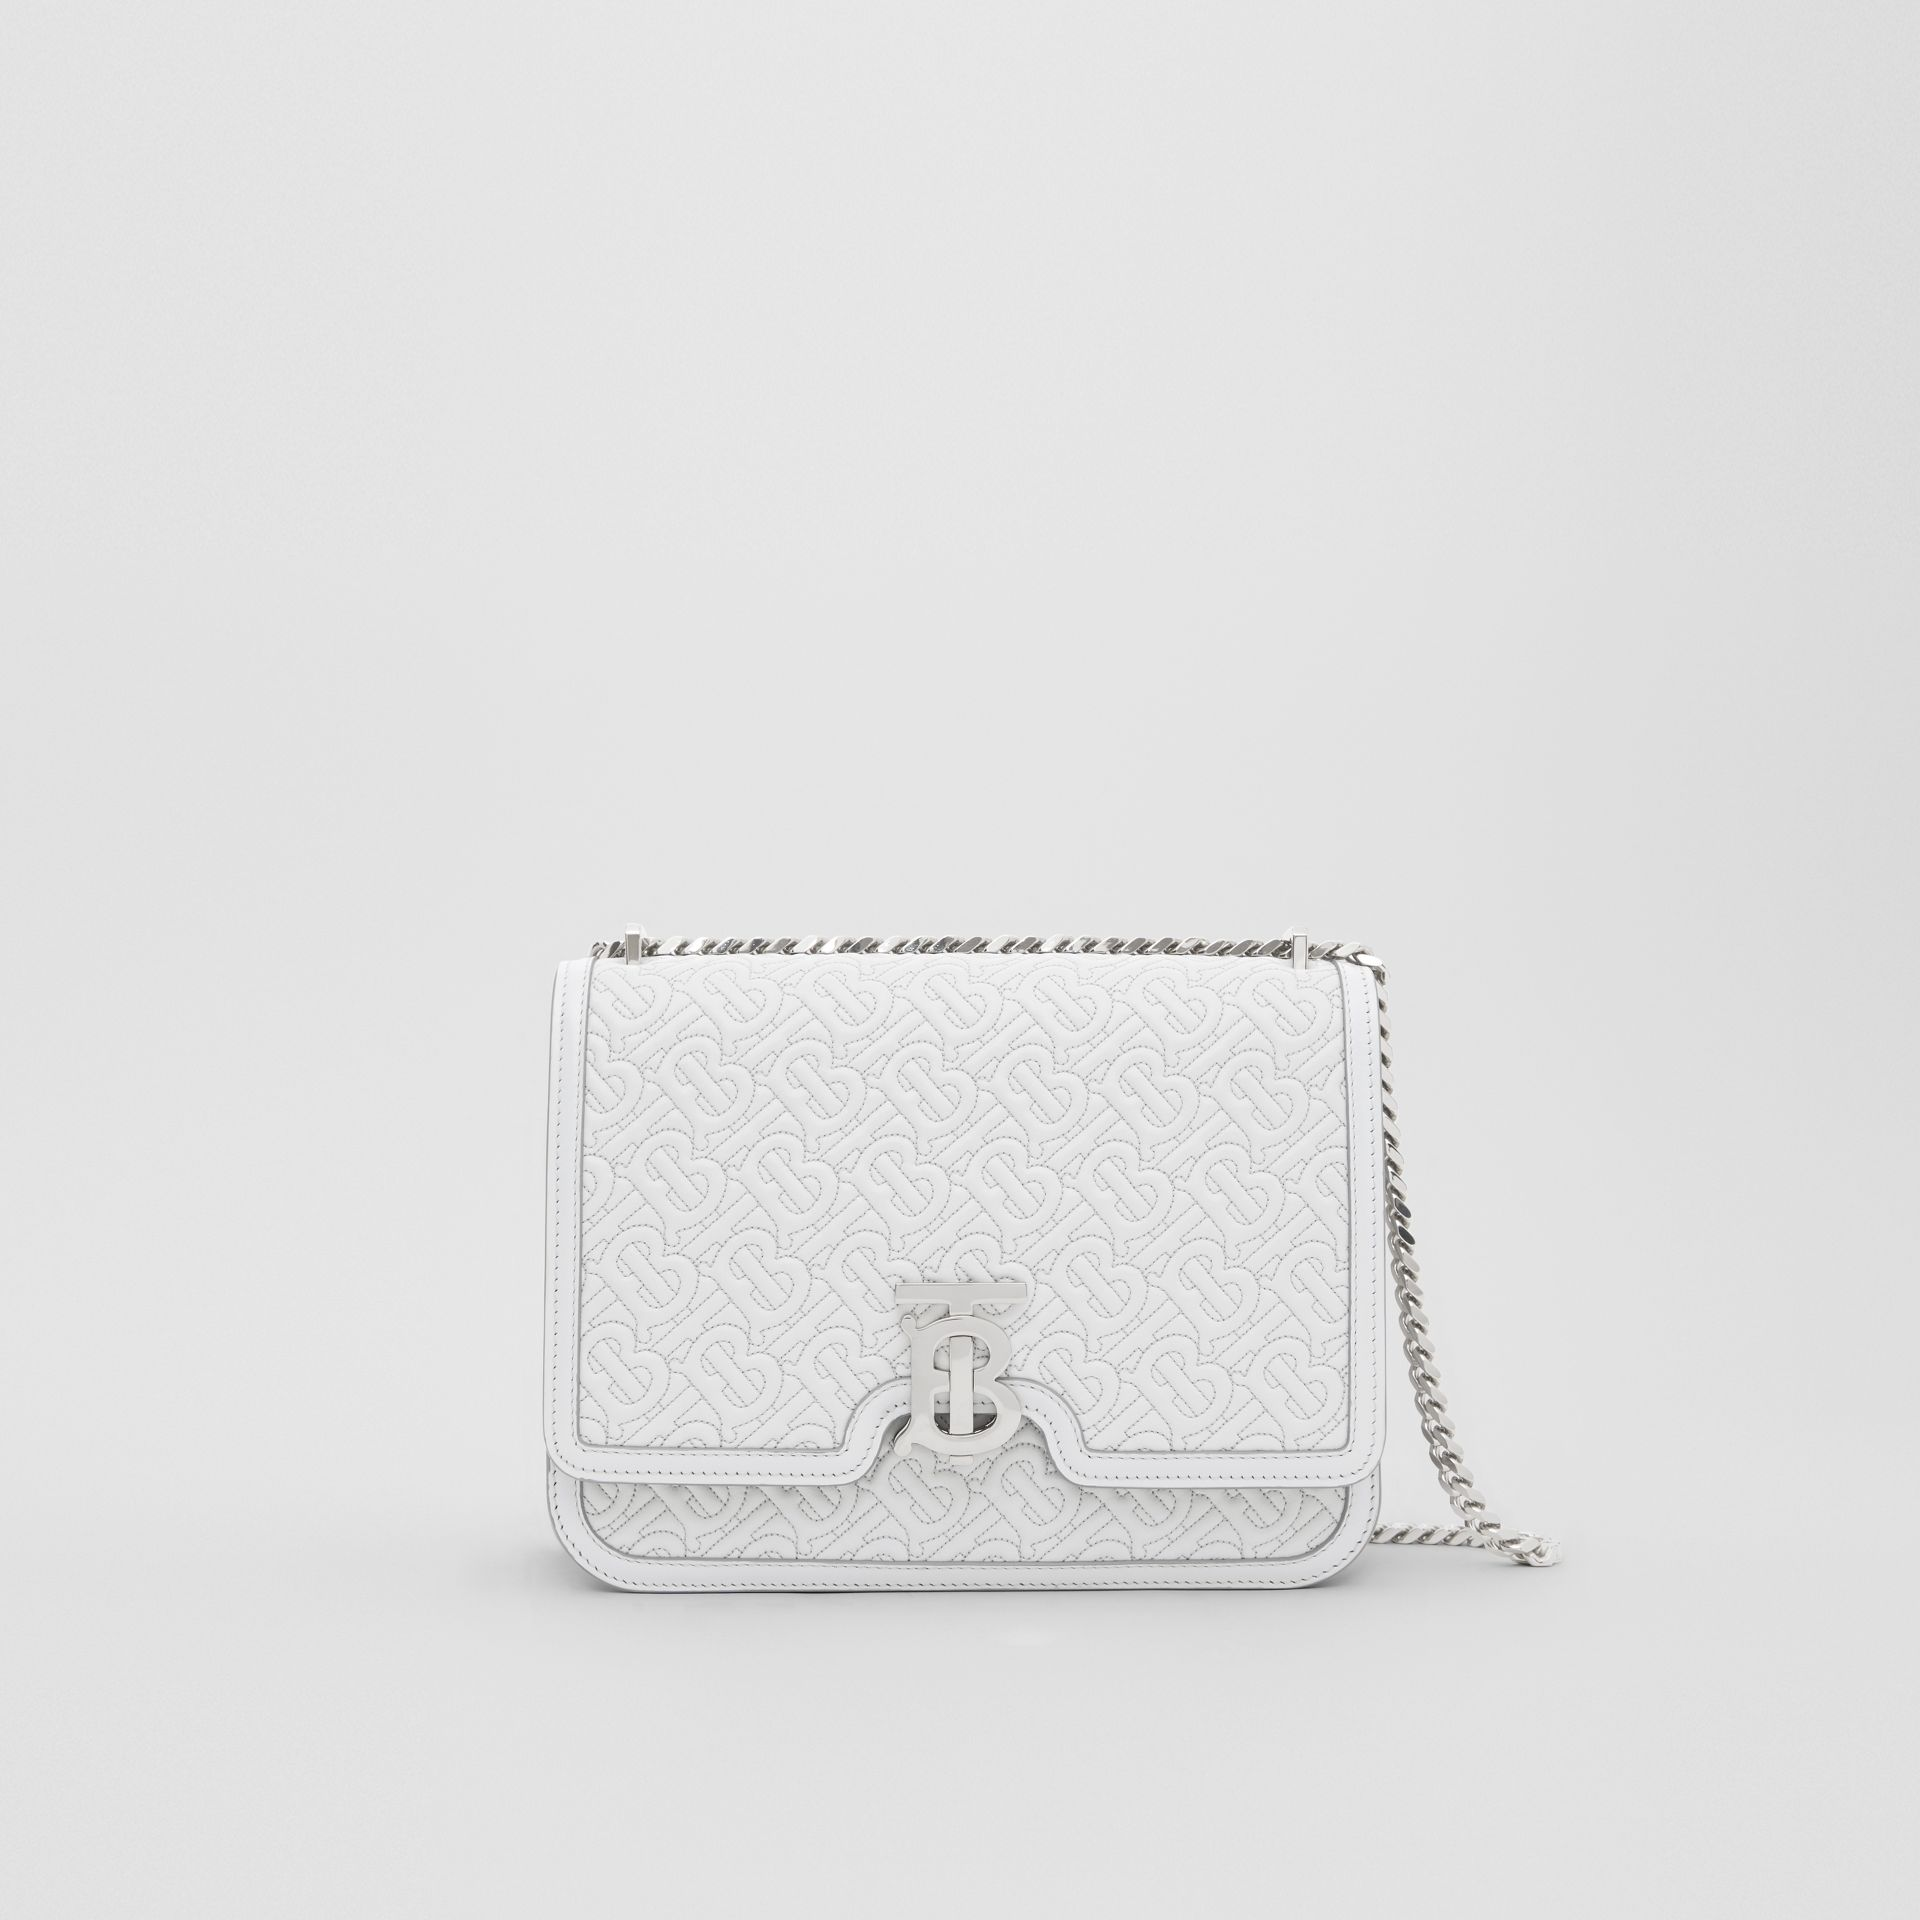 Medium Quilted Monogram Lambskin TB Bag in Light Pebble Grey - Women | Burberry United States - gallery image 0